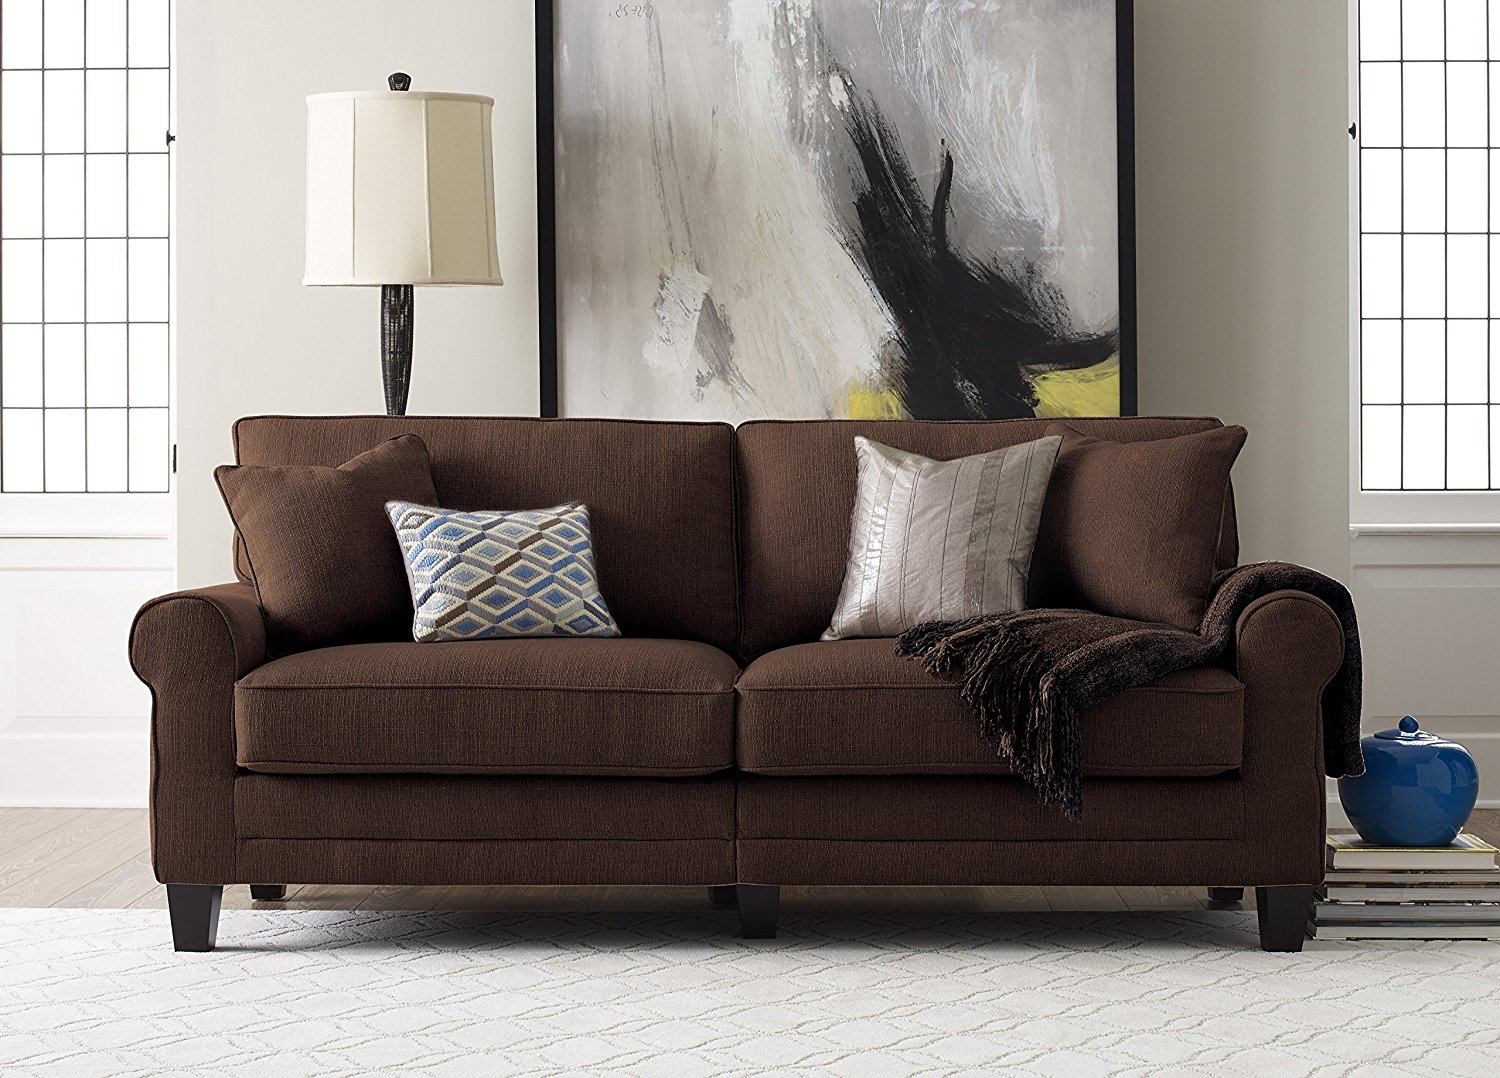 Serta Chocolate Sofa Includes 2 Decorative Pillows